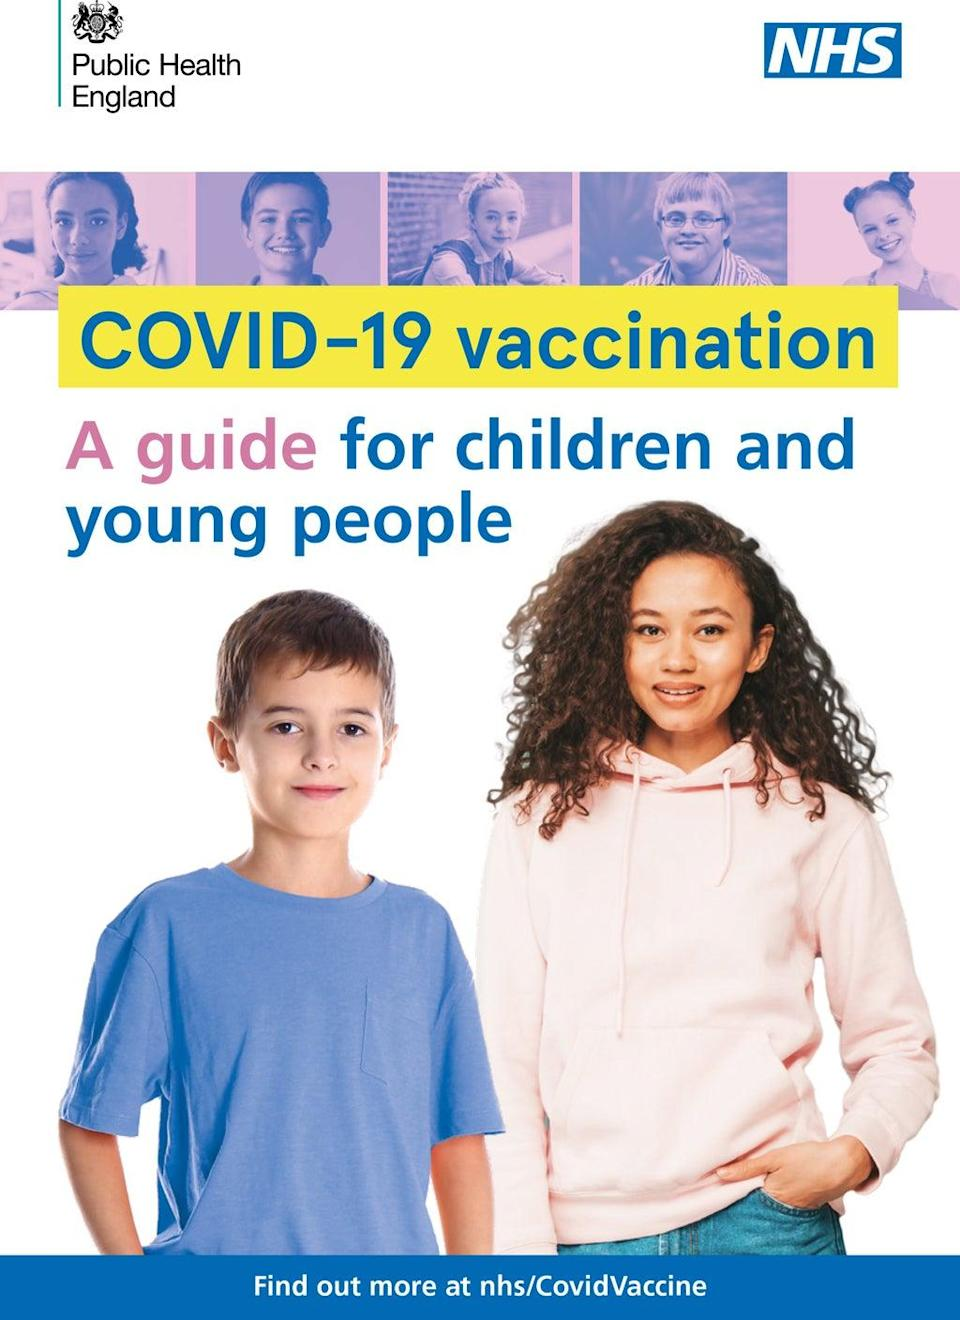 A guide to Covid-19 vaccination for children and young people (Public Health England/PA) (PA Media)